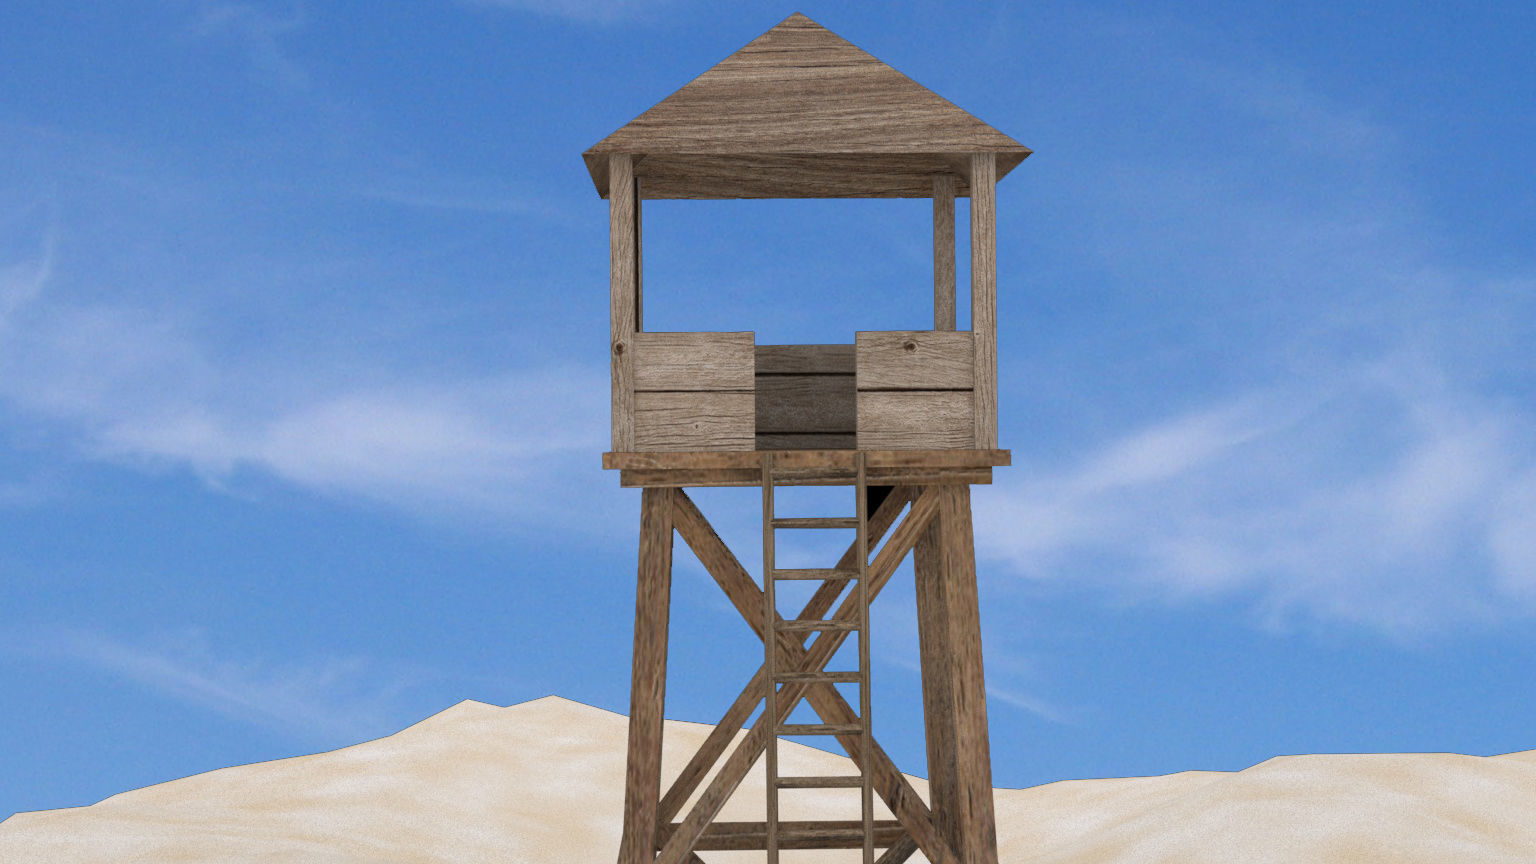 Watch tower - low poly